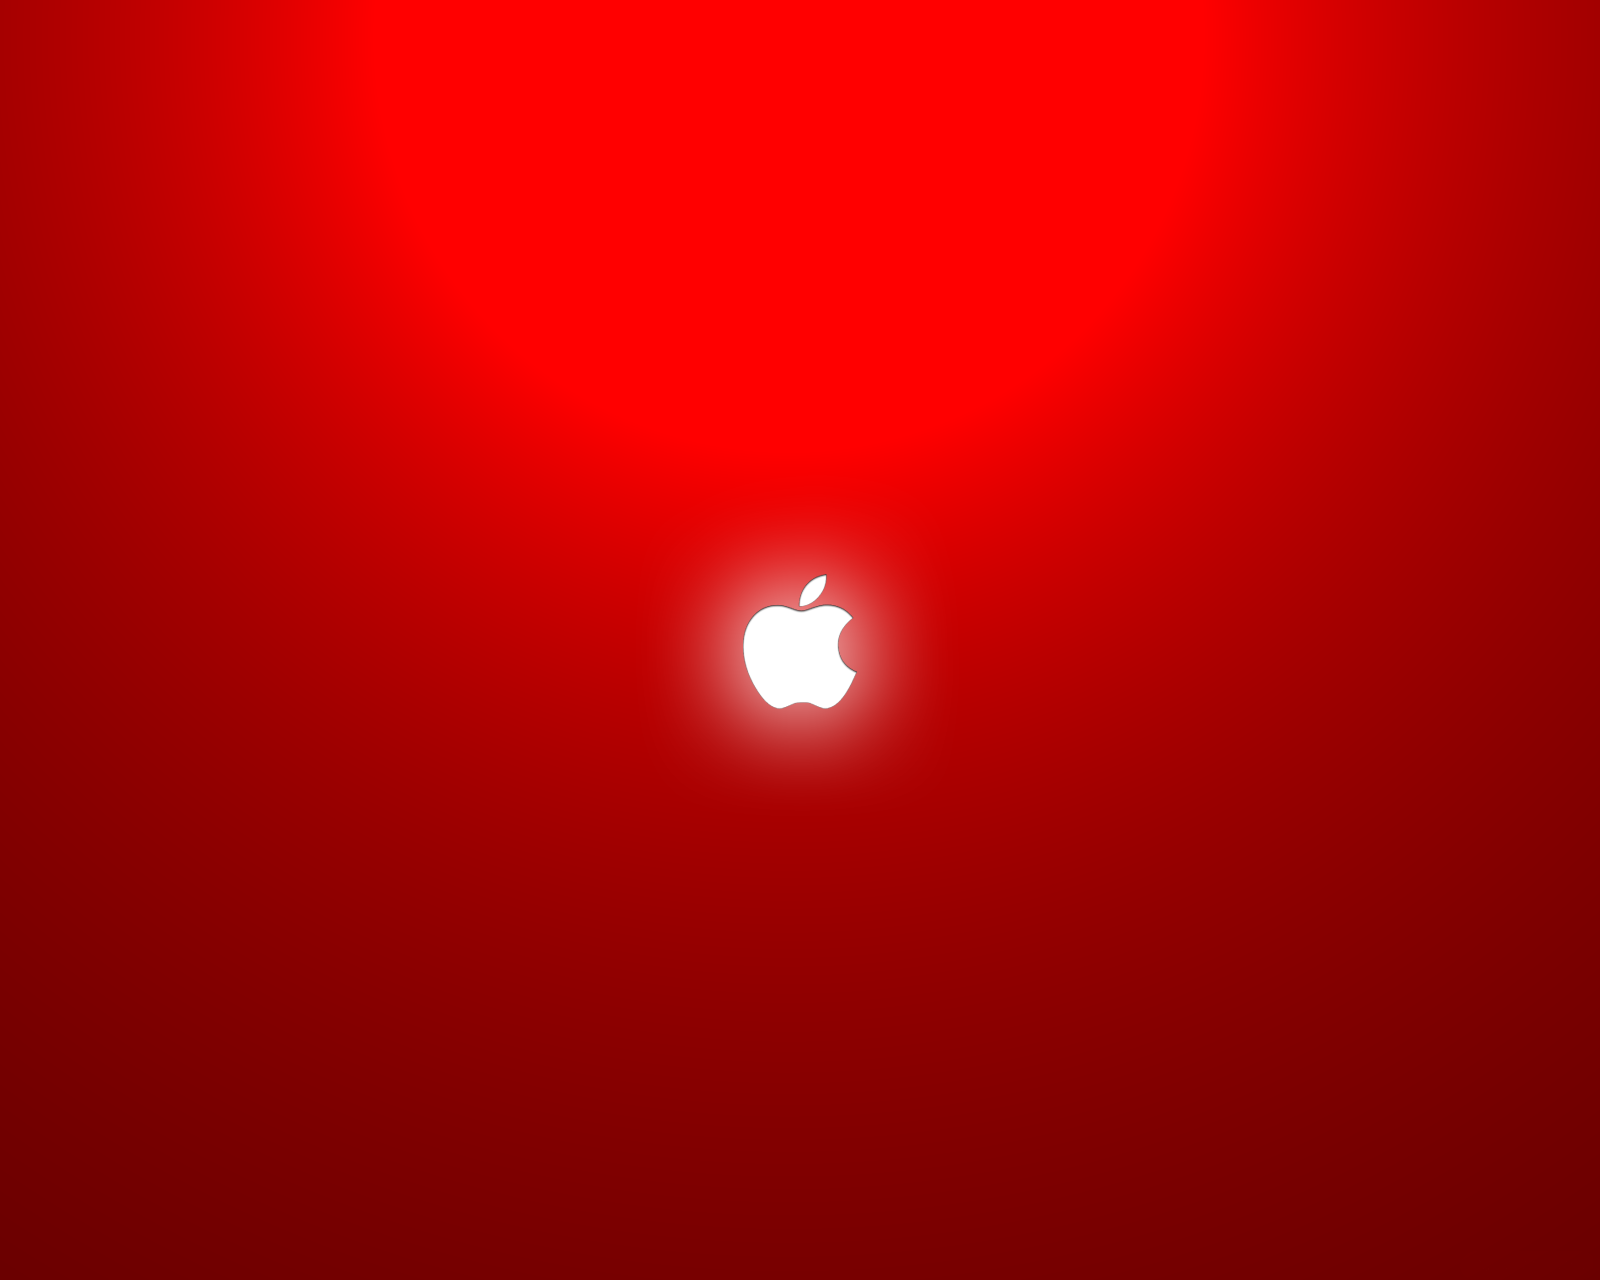 Red Apple Wallpaper